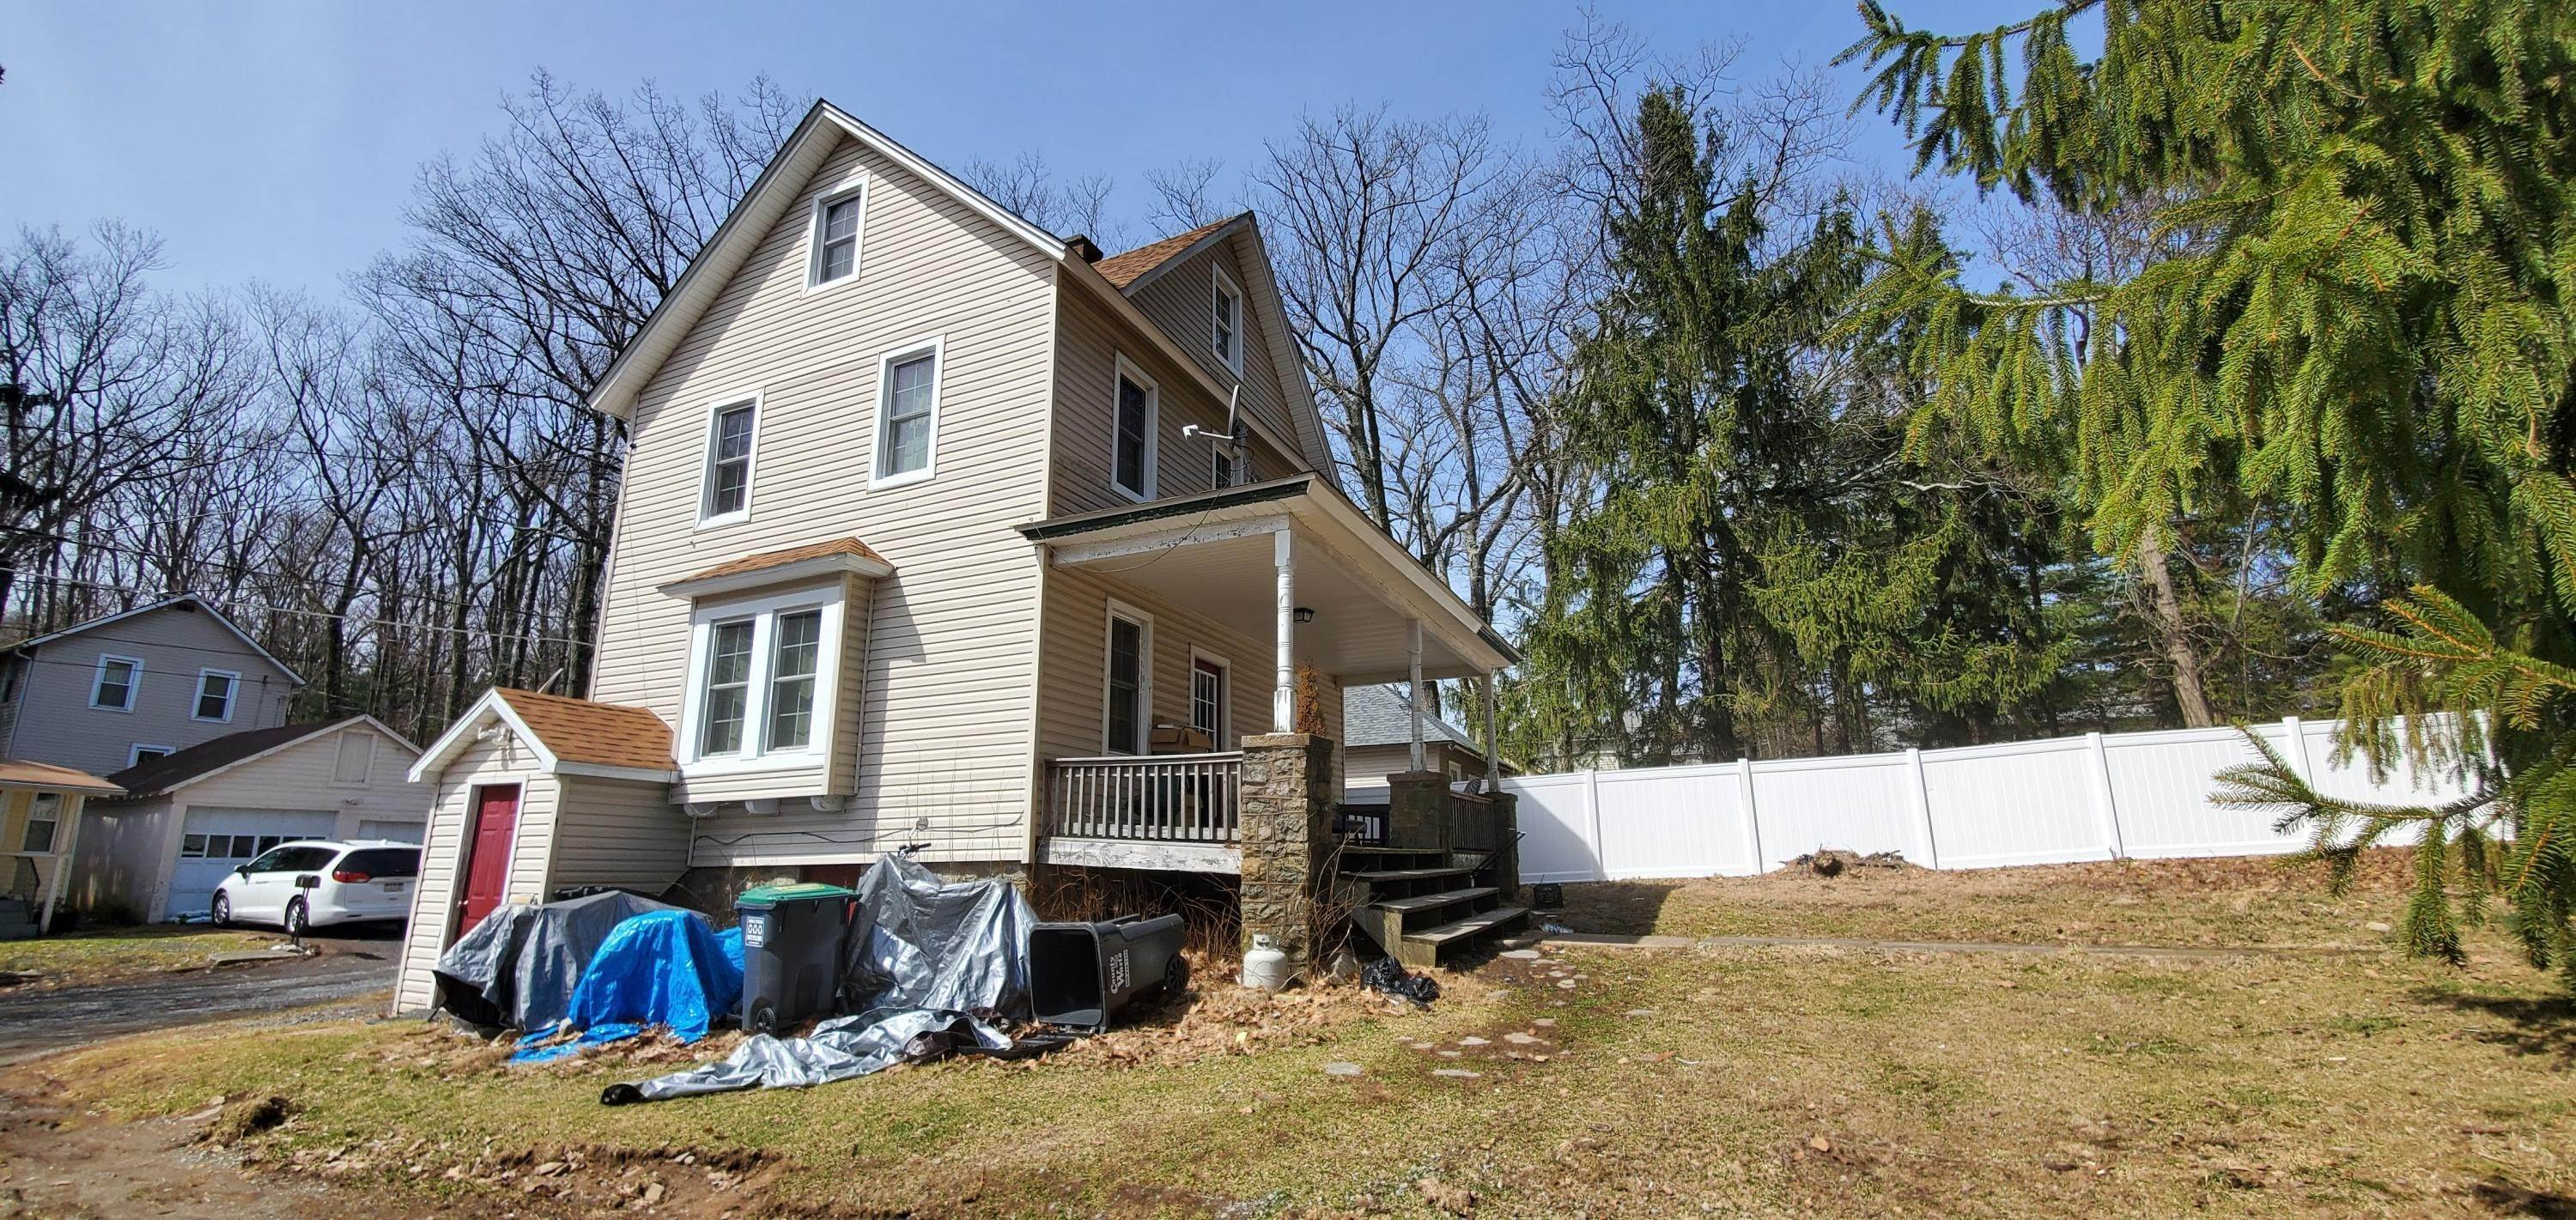 39. Single Family Homes for Sale at 11 Smith Aly Mount Pocono, Pennsylvania 18344 United States